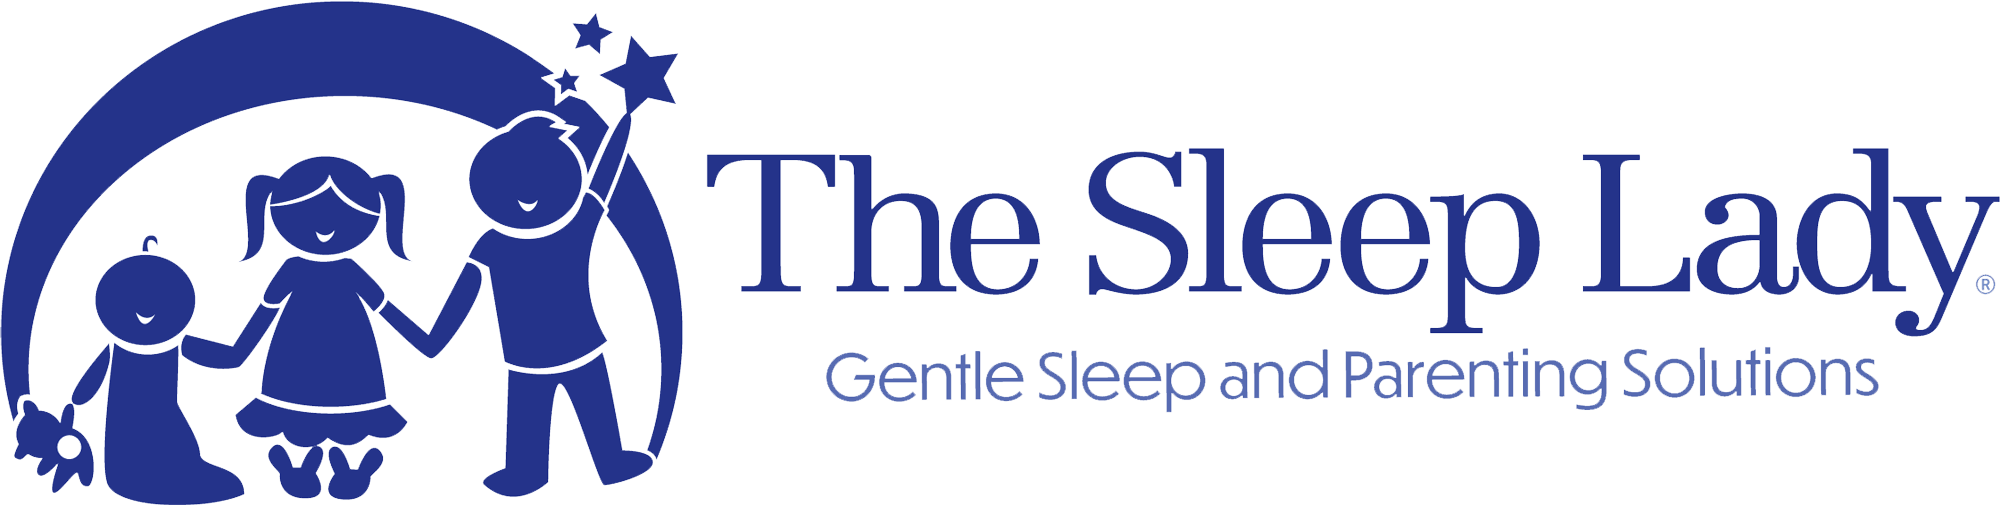 The Sleep Lady